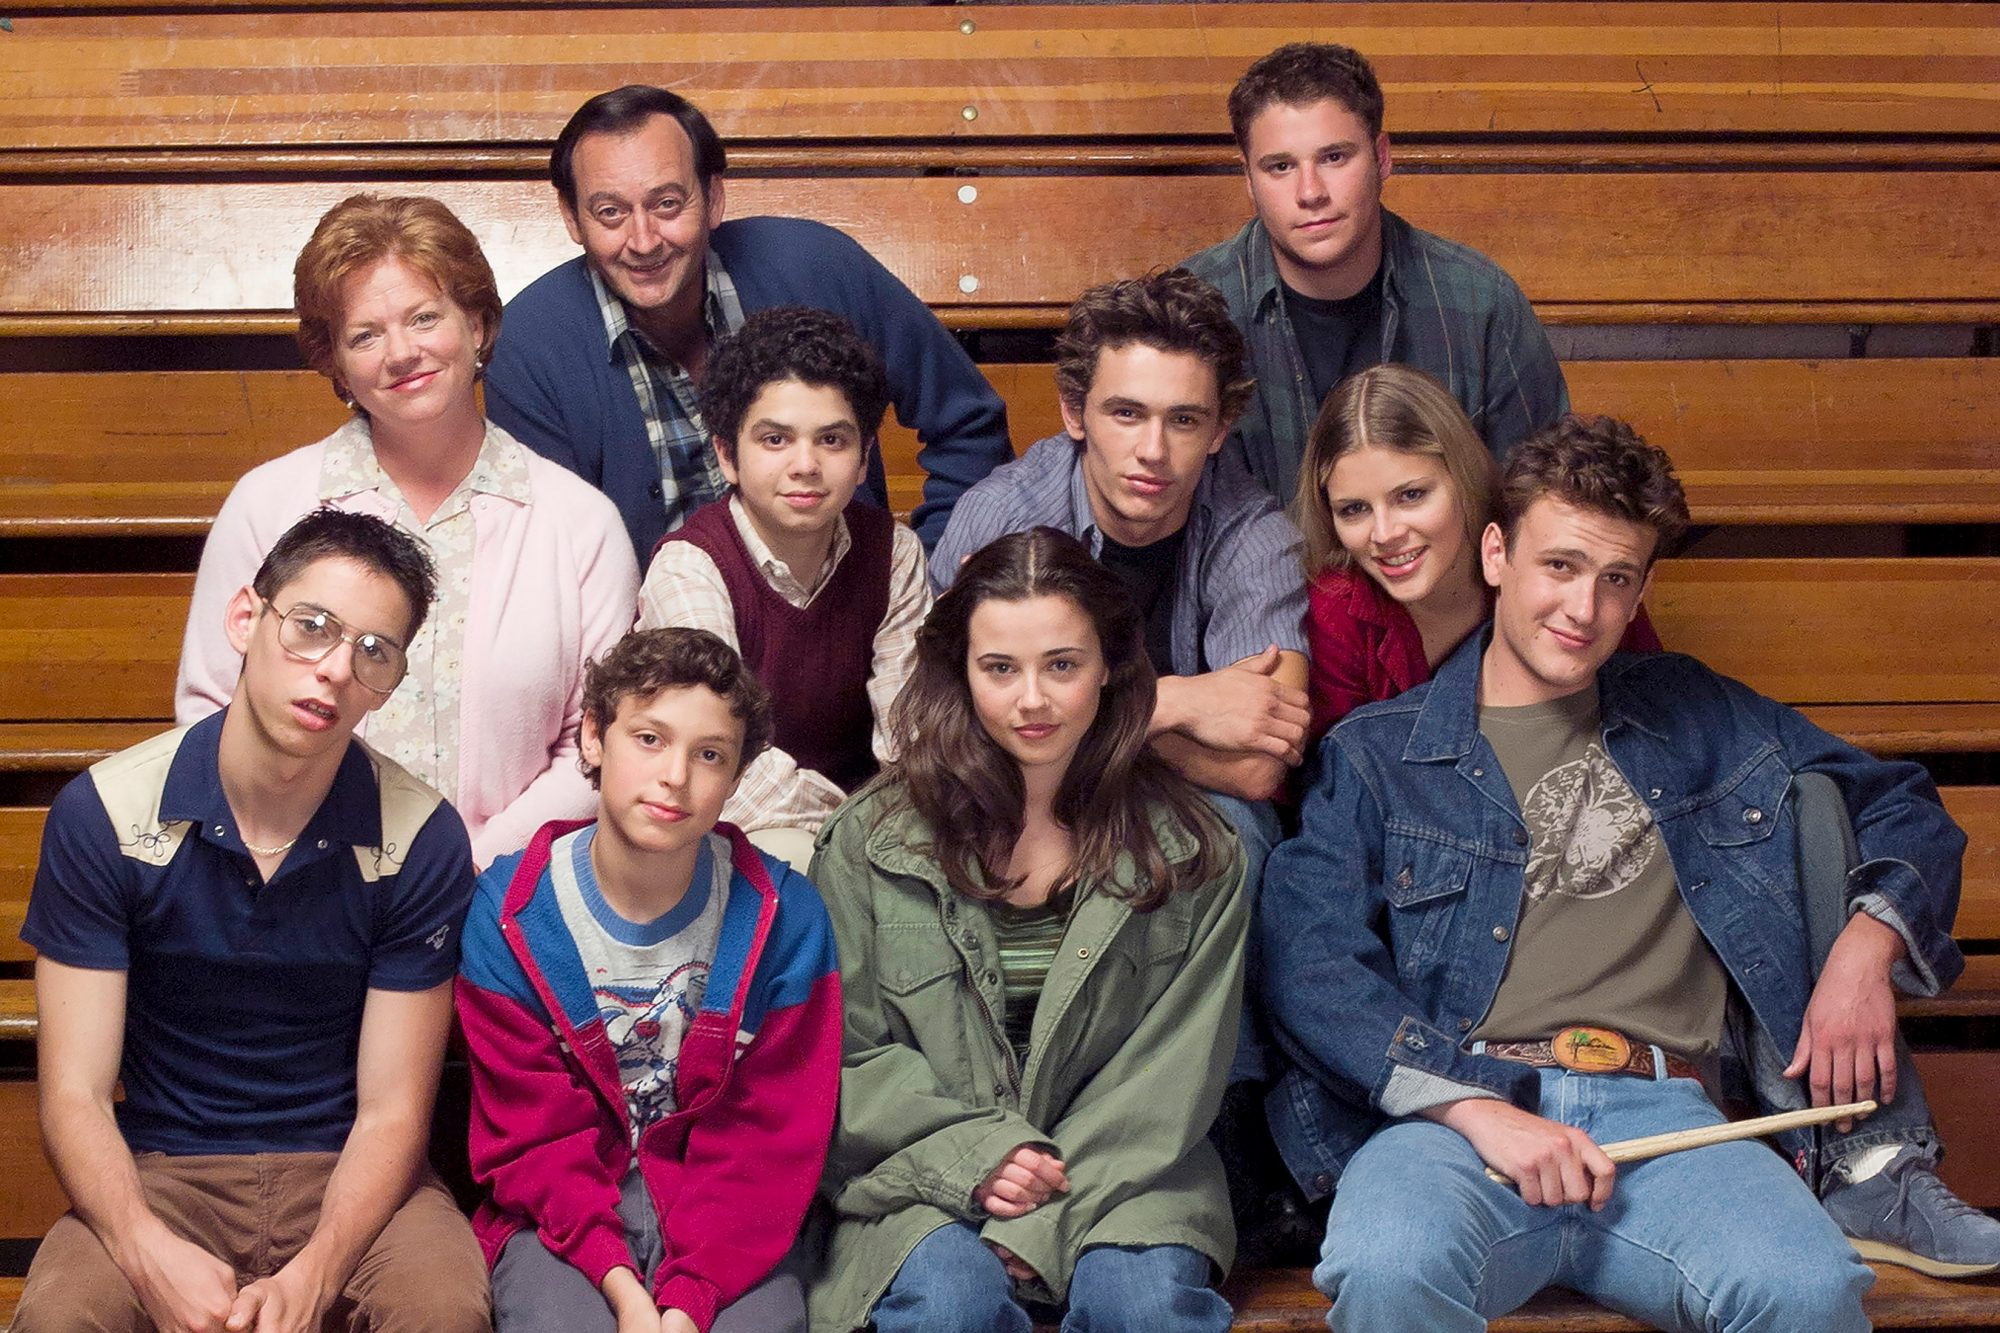 FREAKS AND GEEKS -- Season 1 -- Pictured: (front, l-r) Martin Starr as Bill Haverchuck, John Francis Daley as Sam Weir, Linda Cardellini as Lindsay Weir, Jason Segel as Nick Andopolis, (middle, l-r) Becky Ann Baker as Jean Weir, Samm Levine as Neal Schweiber, James Franco as Daniel Desario, Busy Philipps as Kim Kelly, (back, l-r) Joe Flaherty as Harold Weir, Seth Rogen as Ken Miller -- (Photo by: Chris Haston/NBC/NBCU Photo Bank via Getty Images)